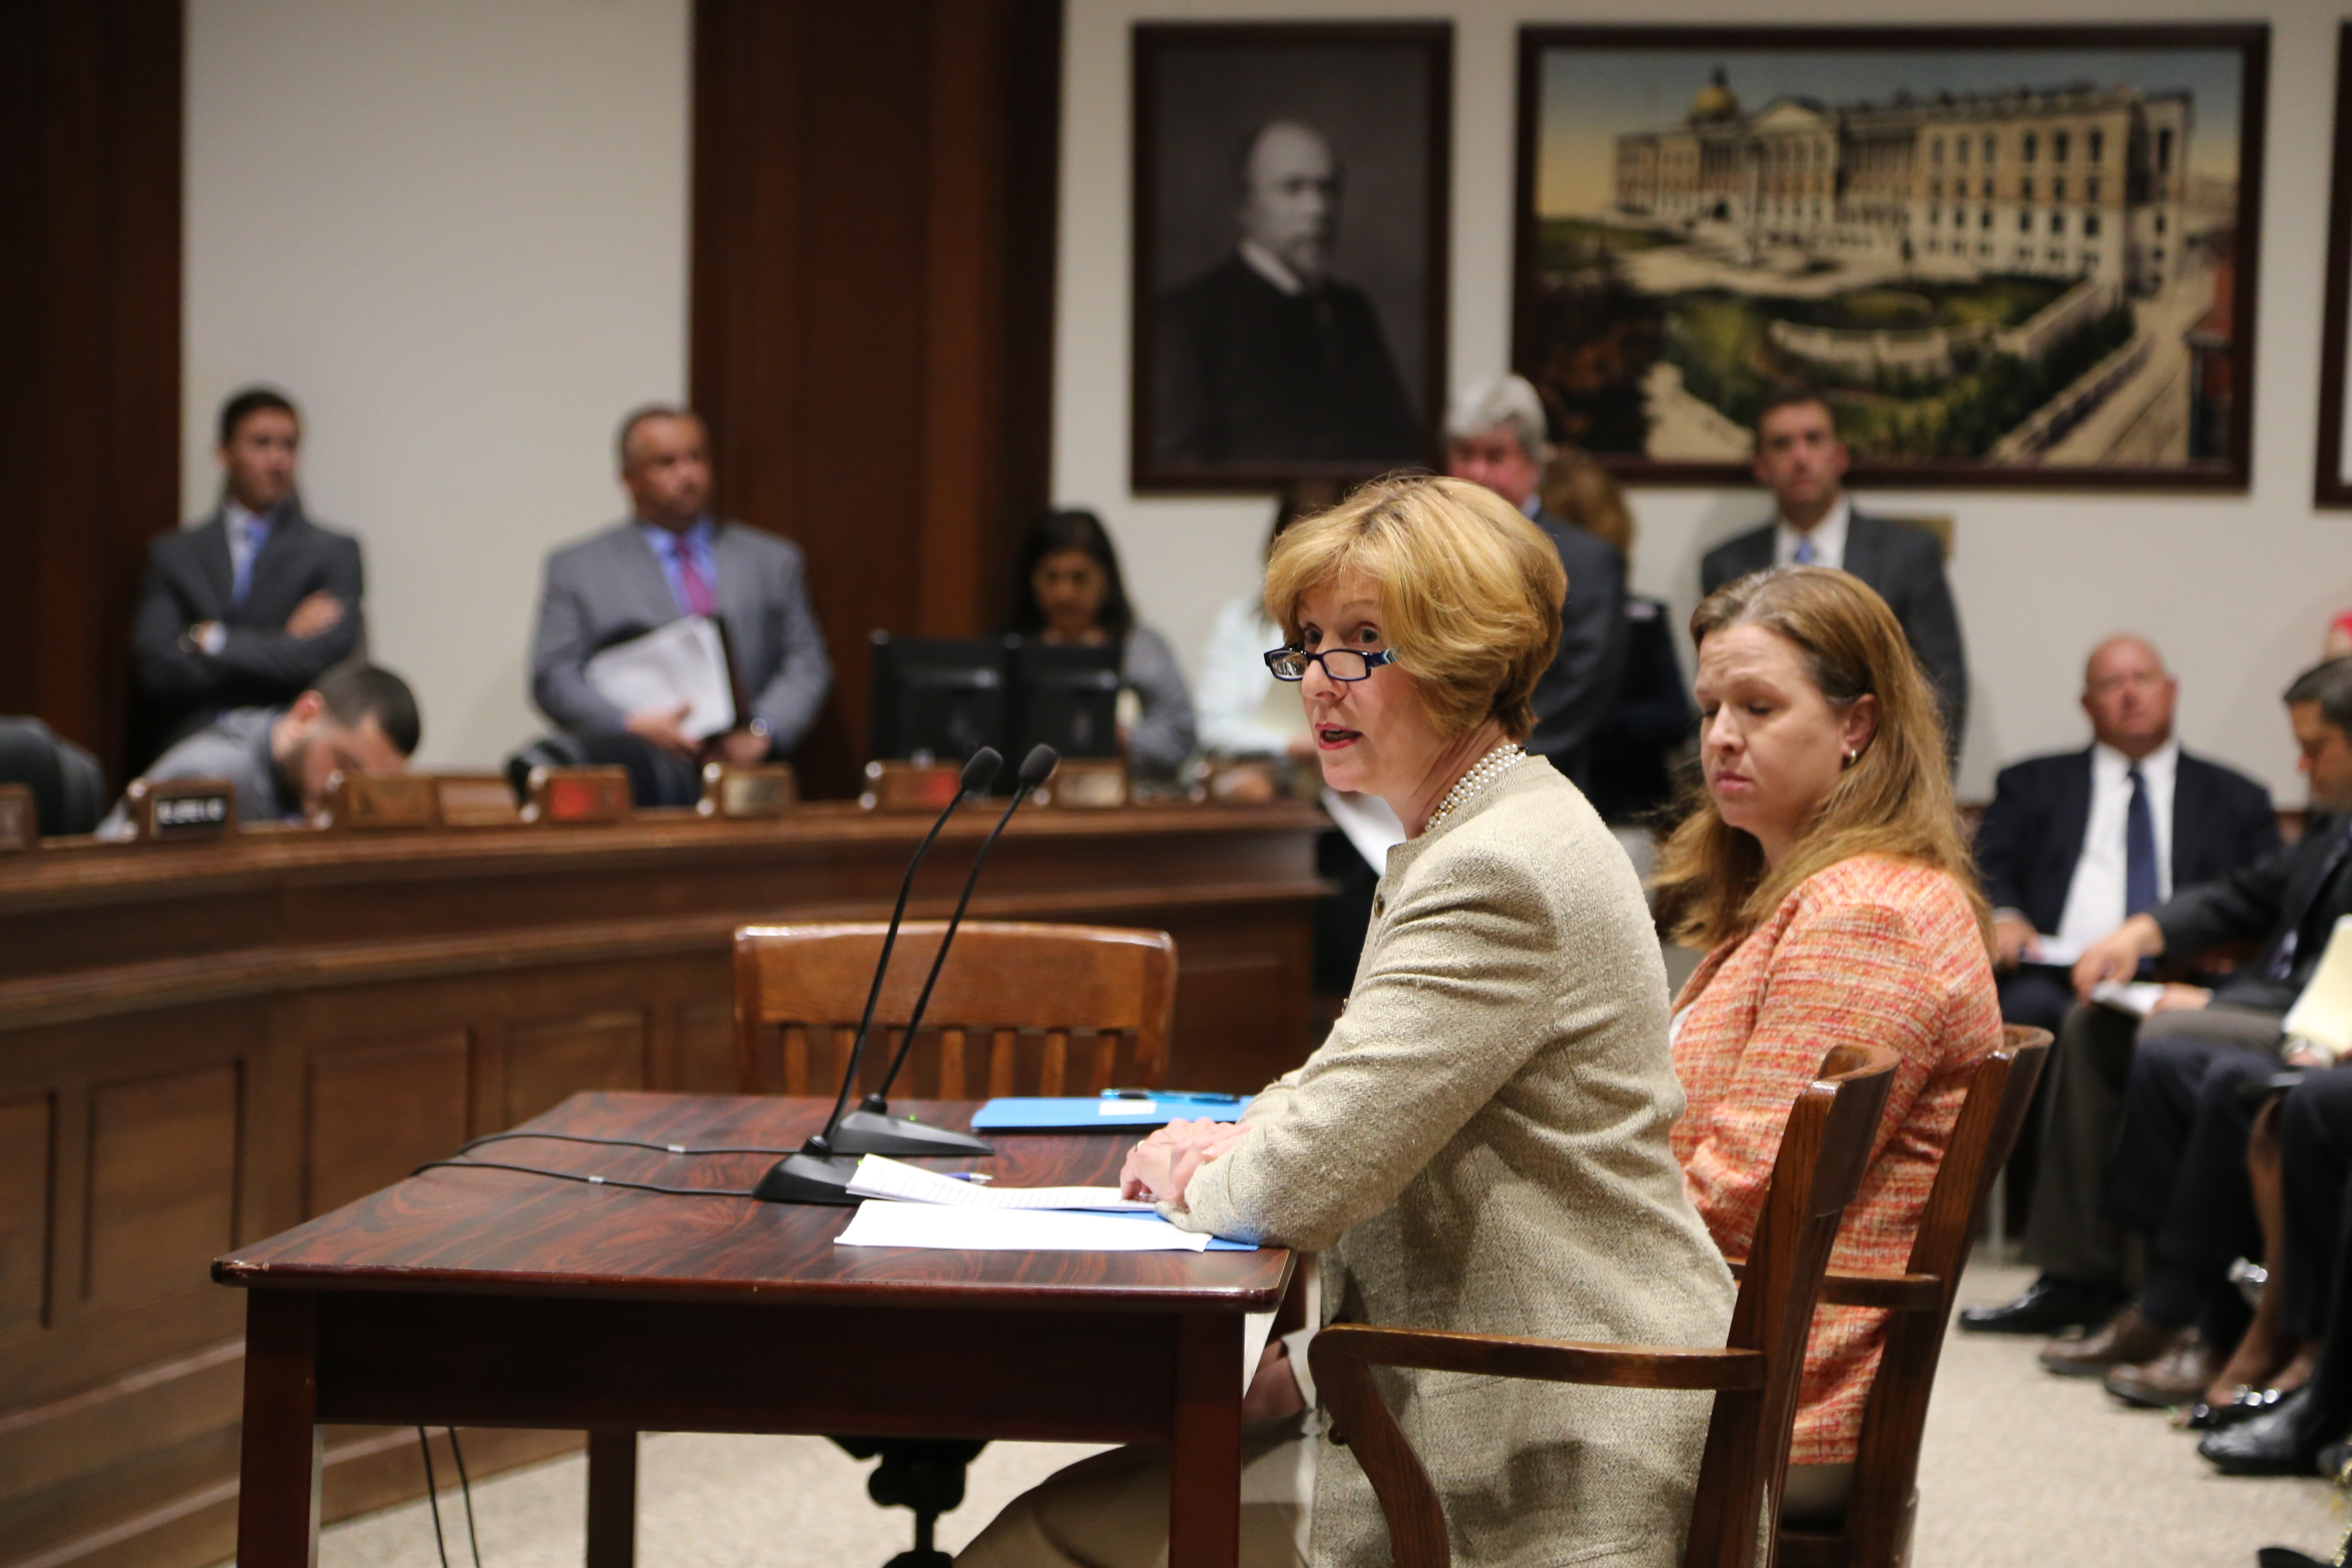 Auditor Bump testifies in support of House Bill 5,An Act Facilitating the Legislative Mandate of the Bureau of Special Investigations.